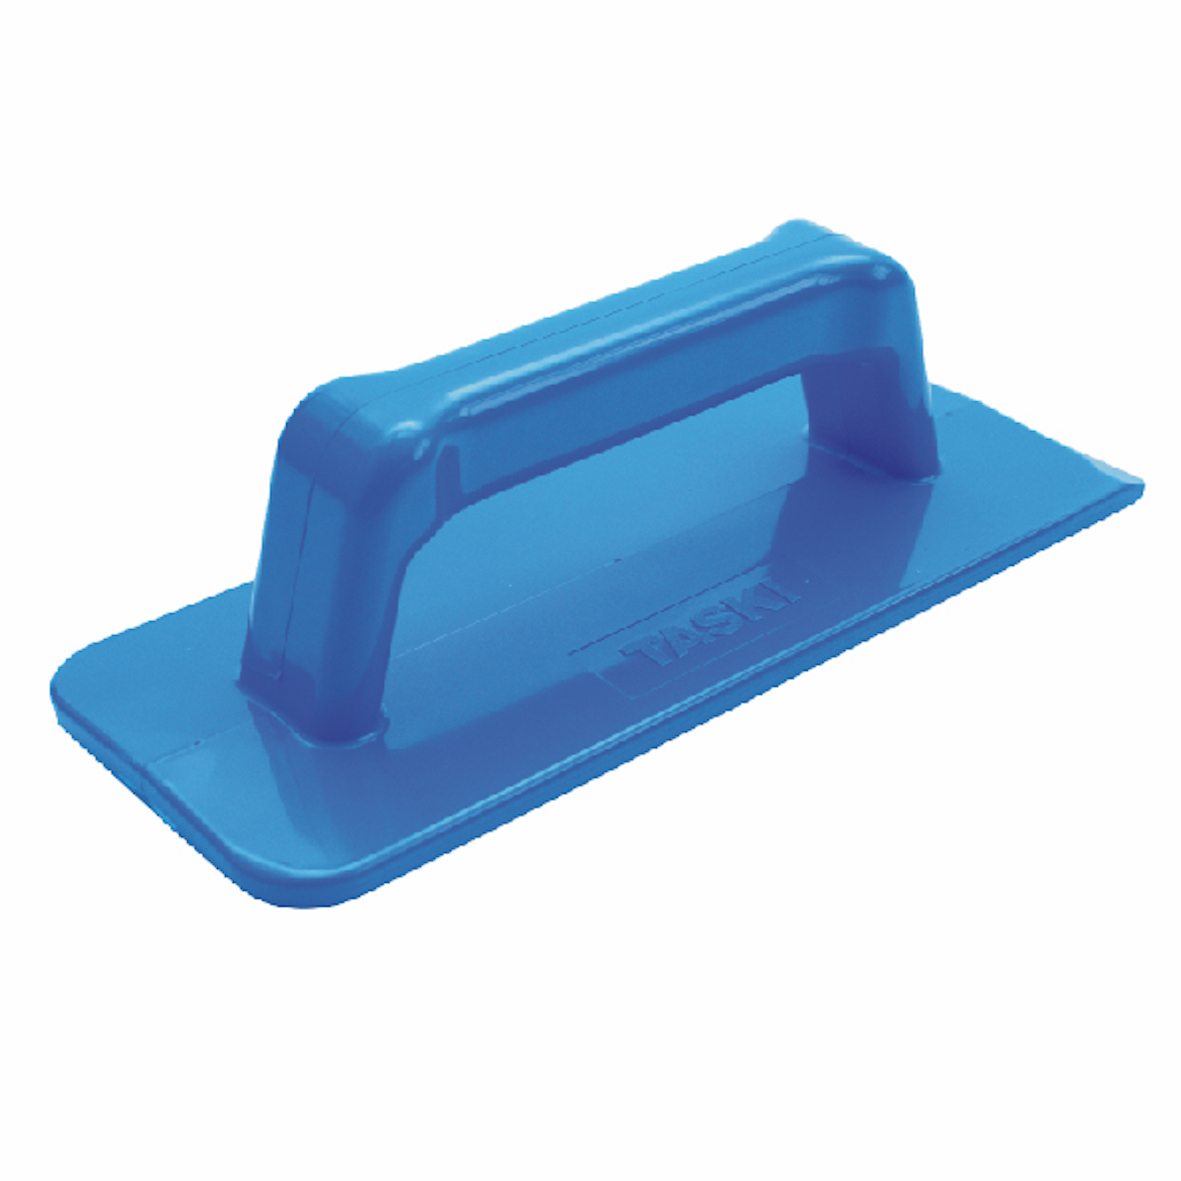 TASKI Jumbo Pad Holder with Grip